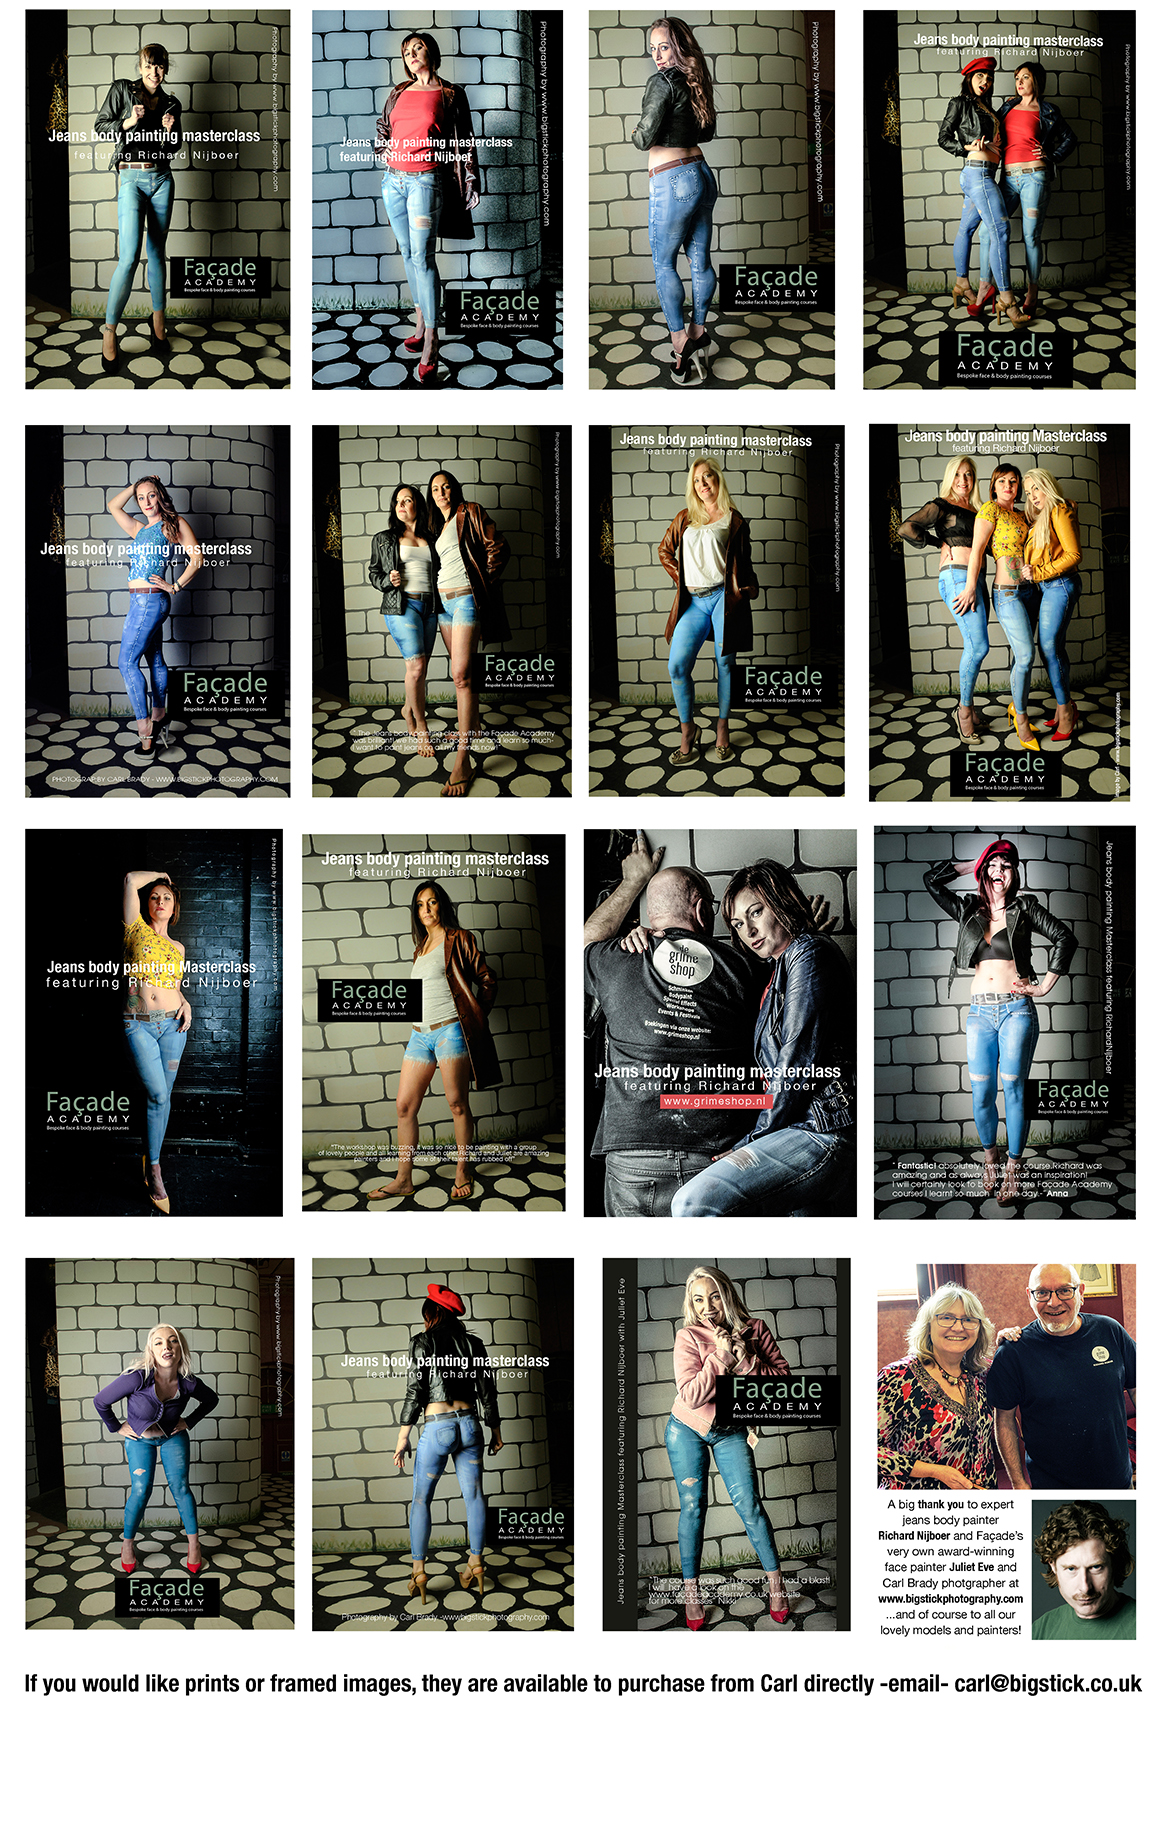 Jeans body painting masterclass images of models in painted jeans